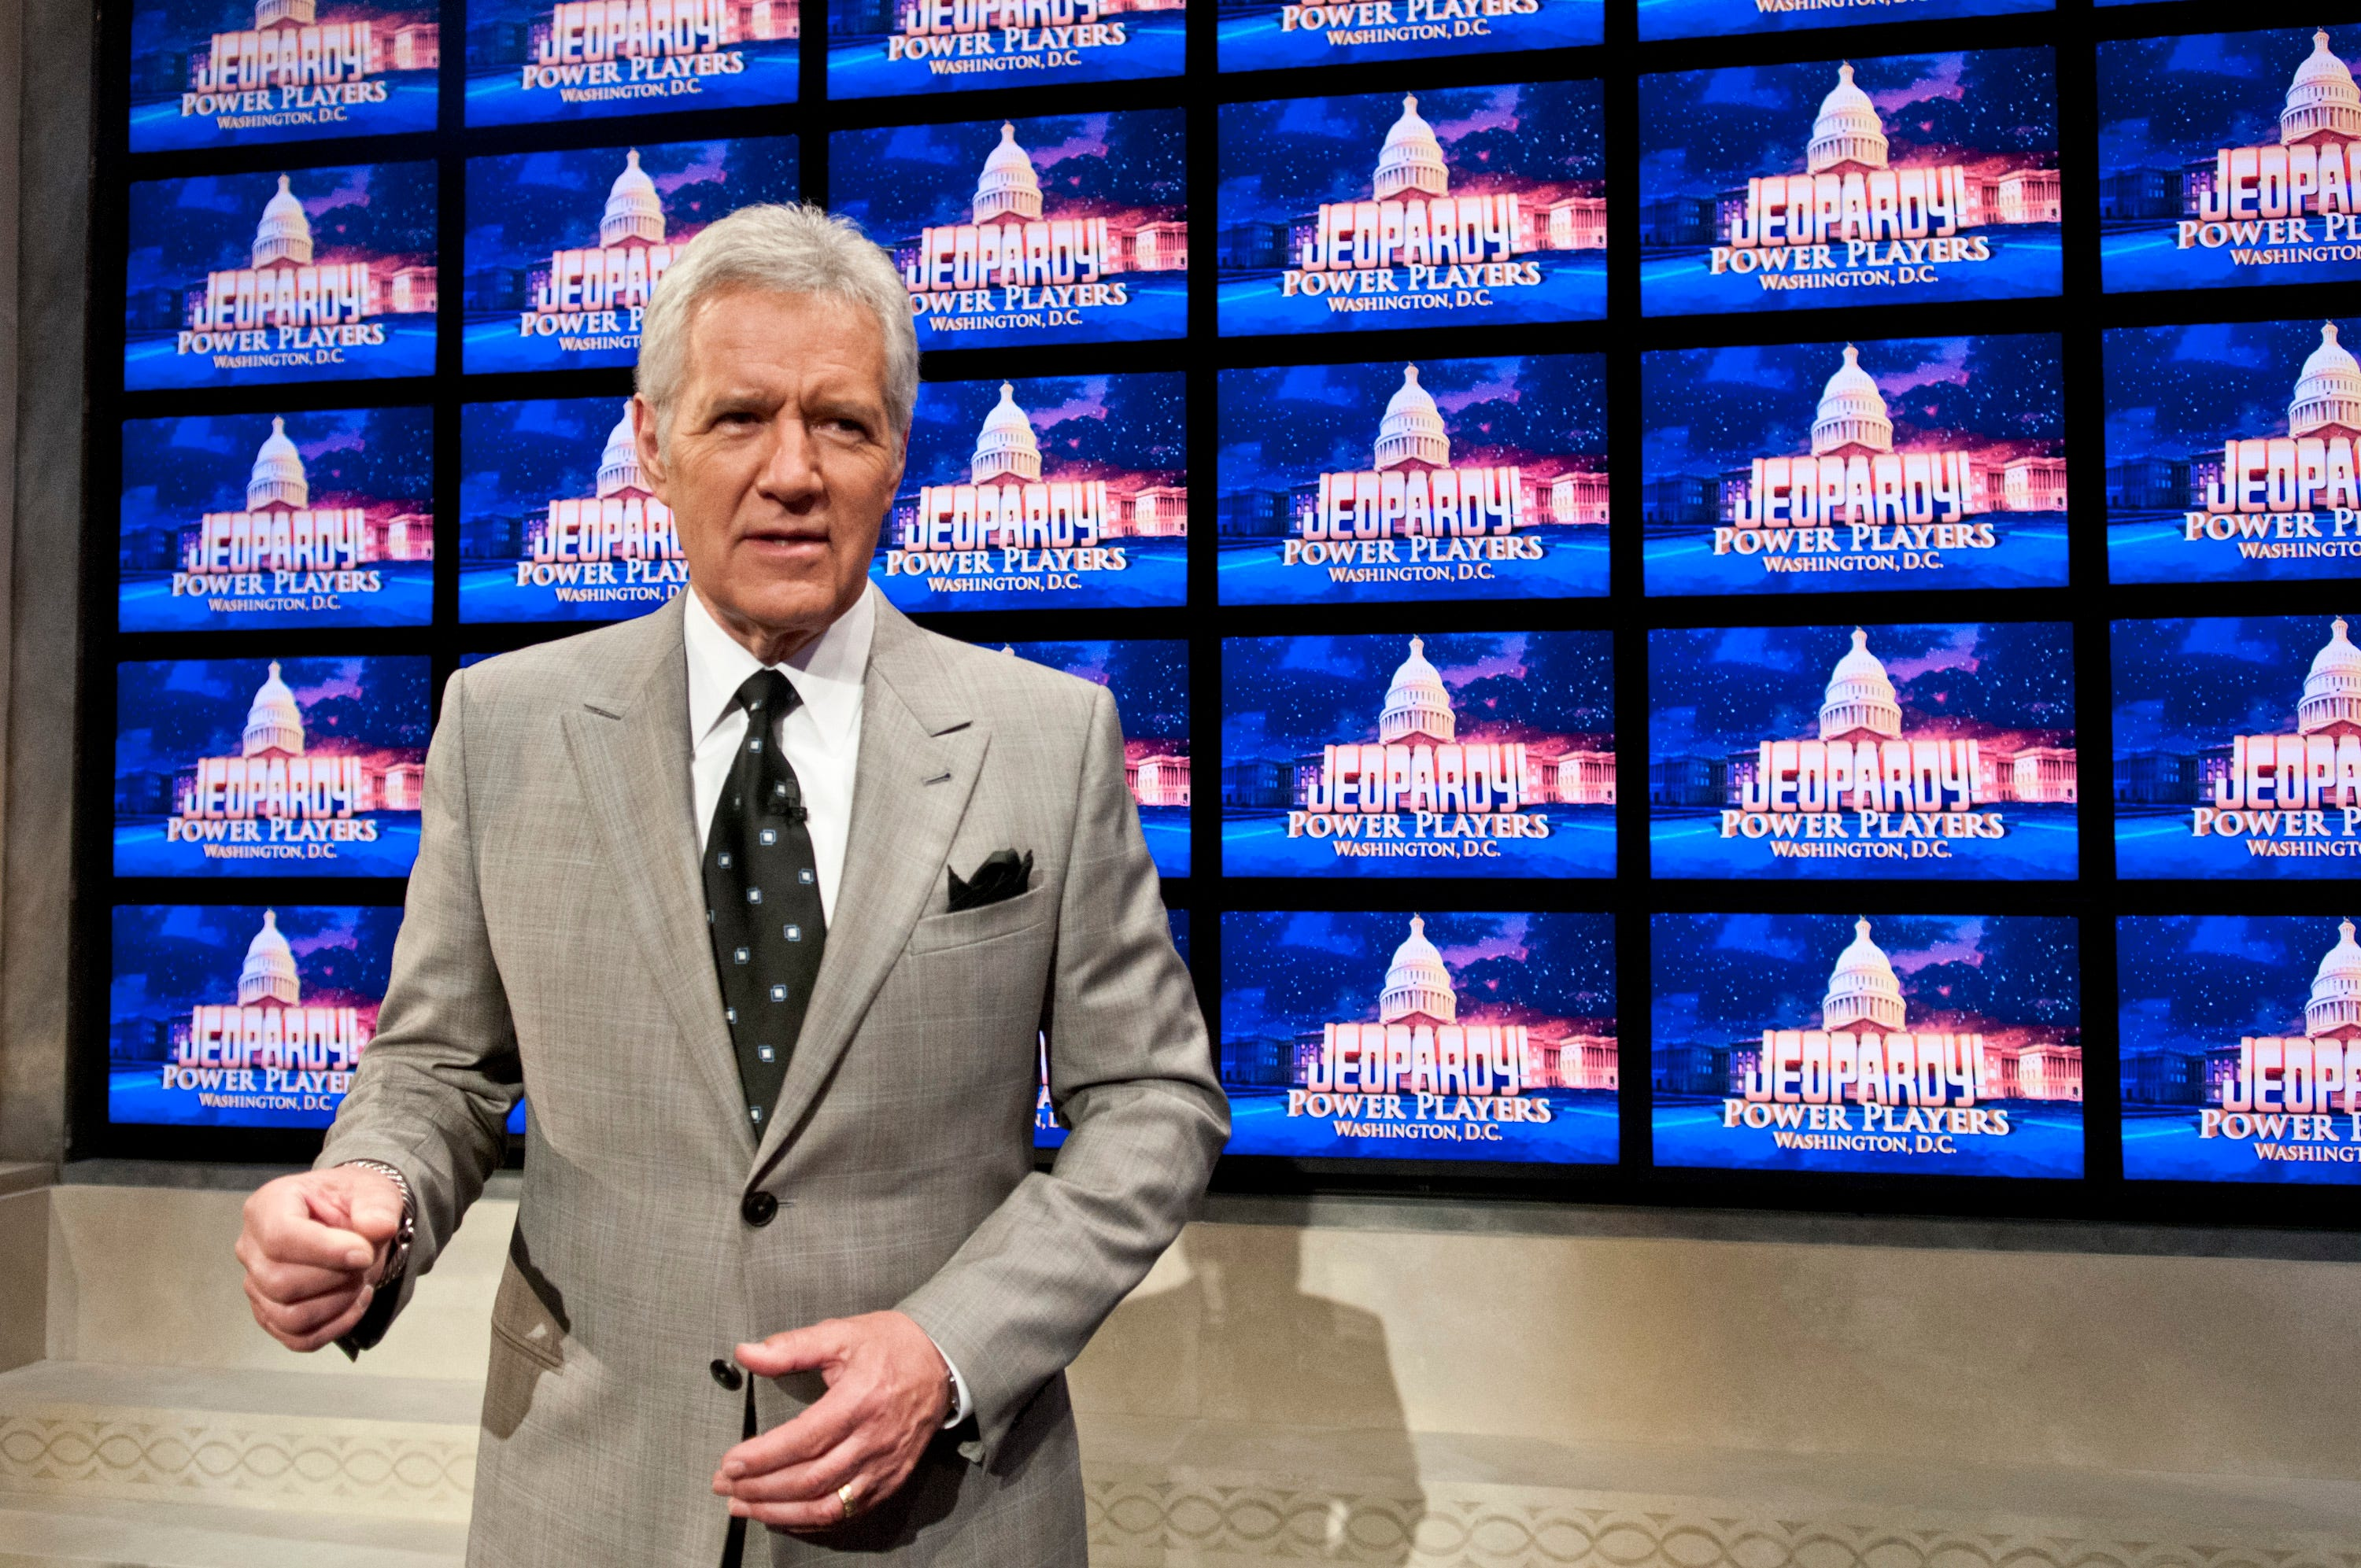 Alex Trebek plans to 'beat' pancreatic cancer. The odds aren't in his favor, doctors say